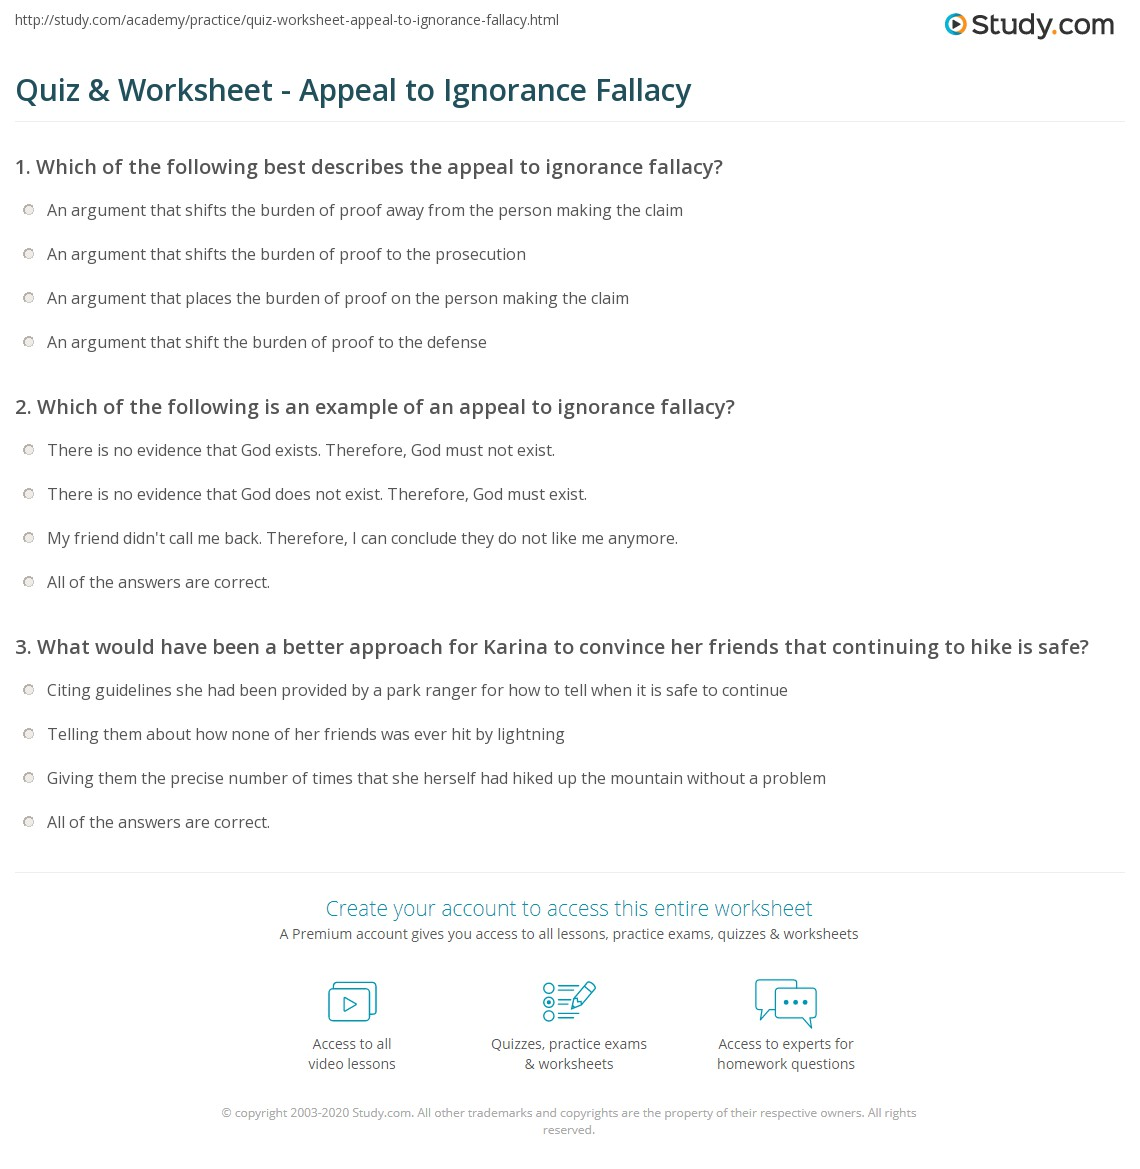 Quiz Worksheet Appeal to Ignorance Fallacy – Fallacies Worksheet